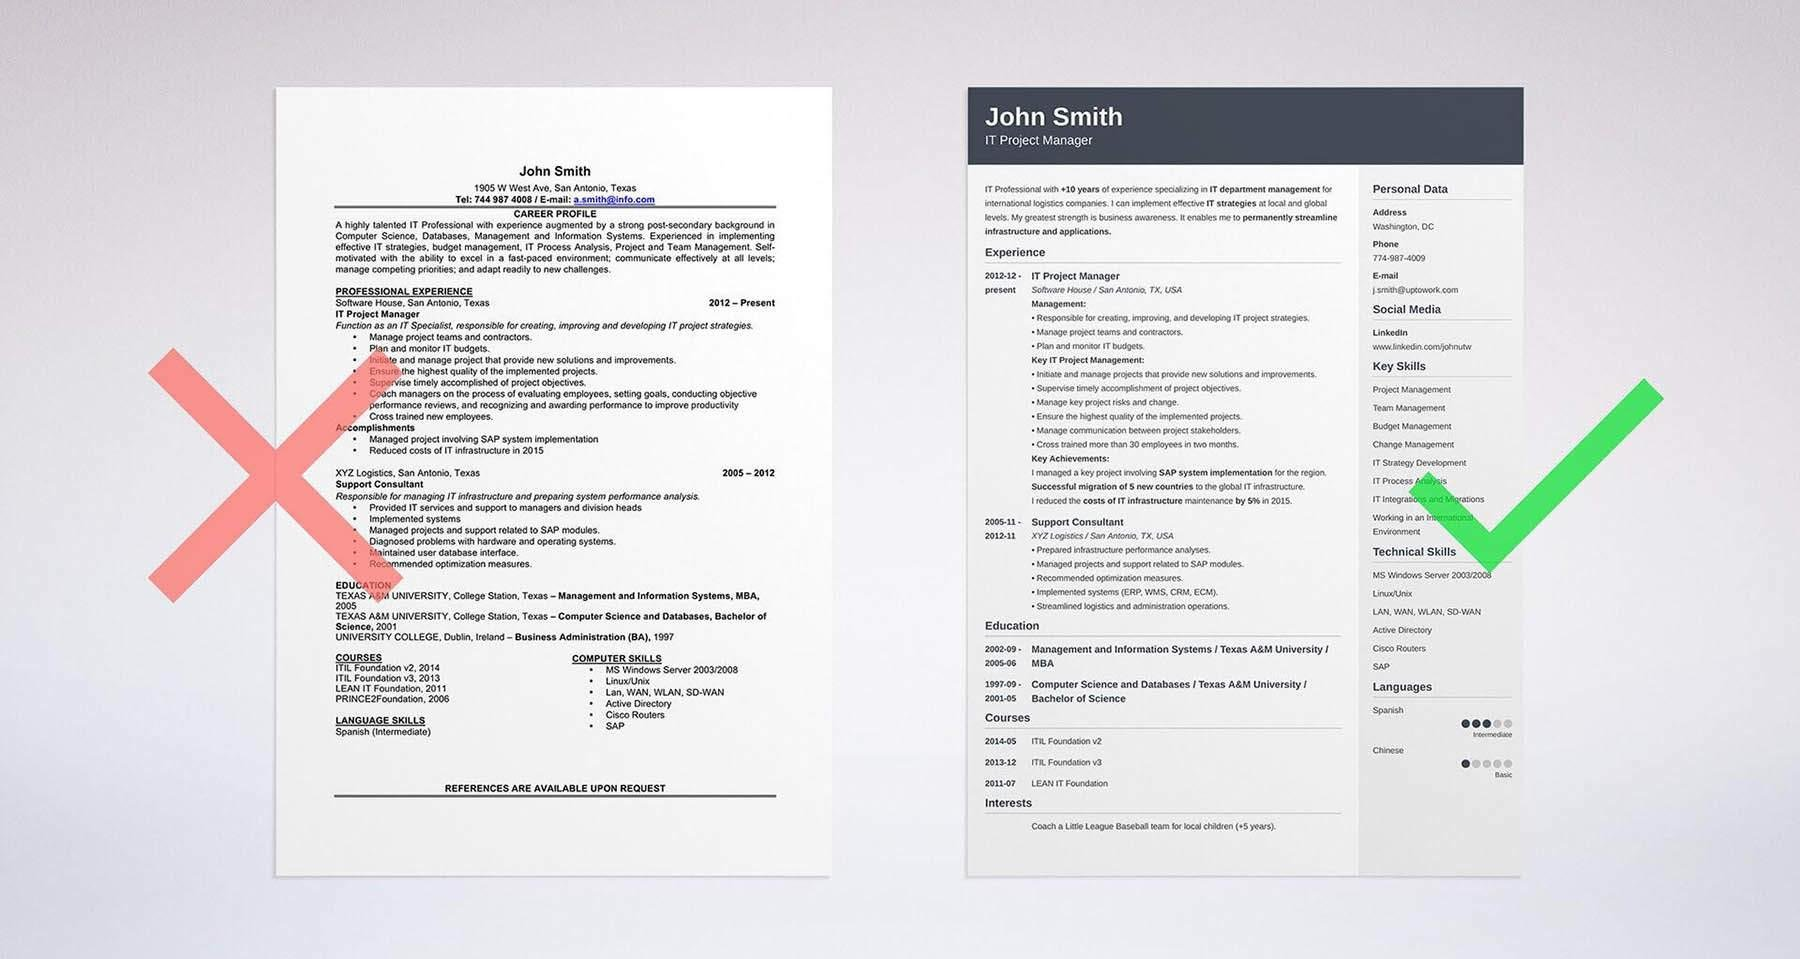 Highlight Your Resume Objective With Our Templates   Create Your Resume In  5 Minutes Here.  Resume Objective Examples Customer Service